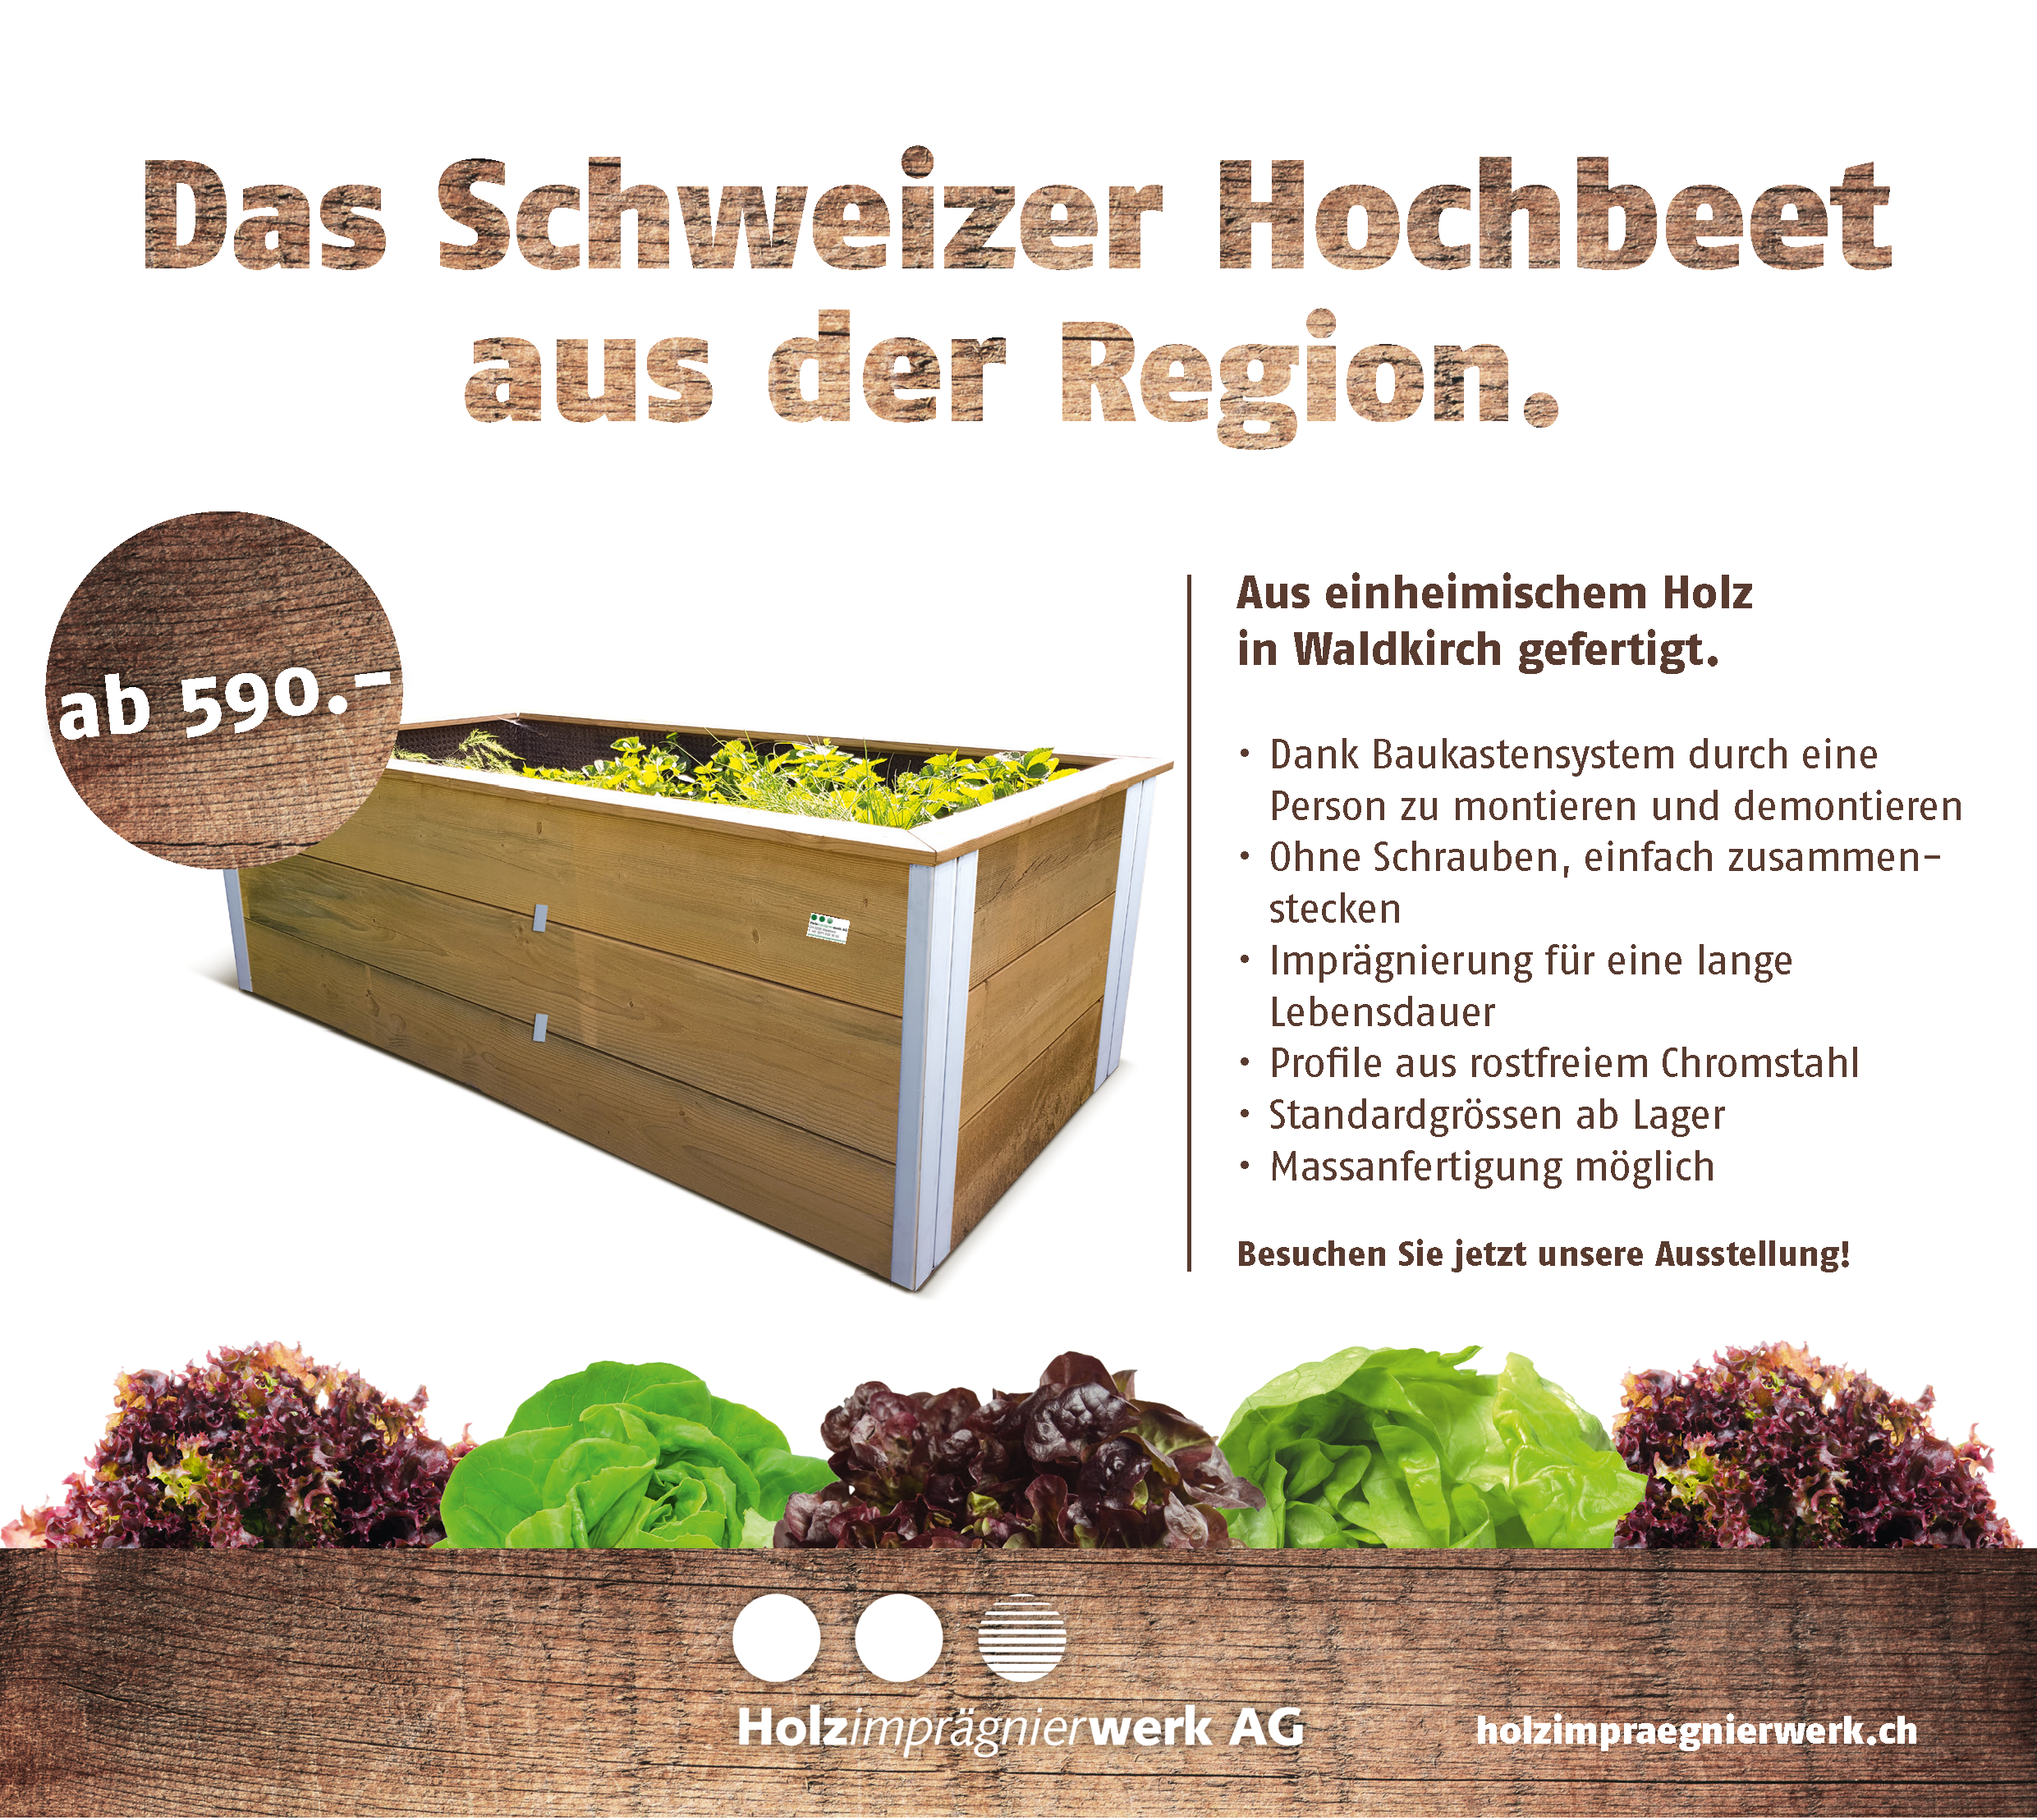 Holzimp_Ins_Hochbeet_Rechnungseindruck_1905 ab CHF_Sept_2019.png